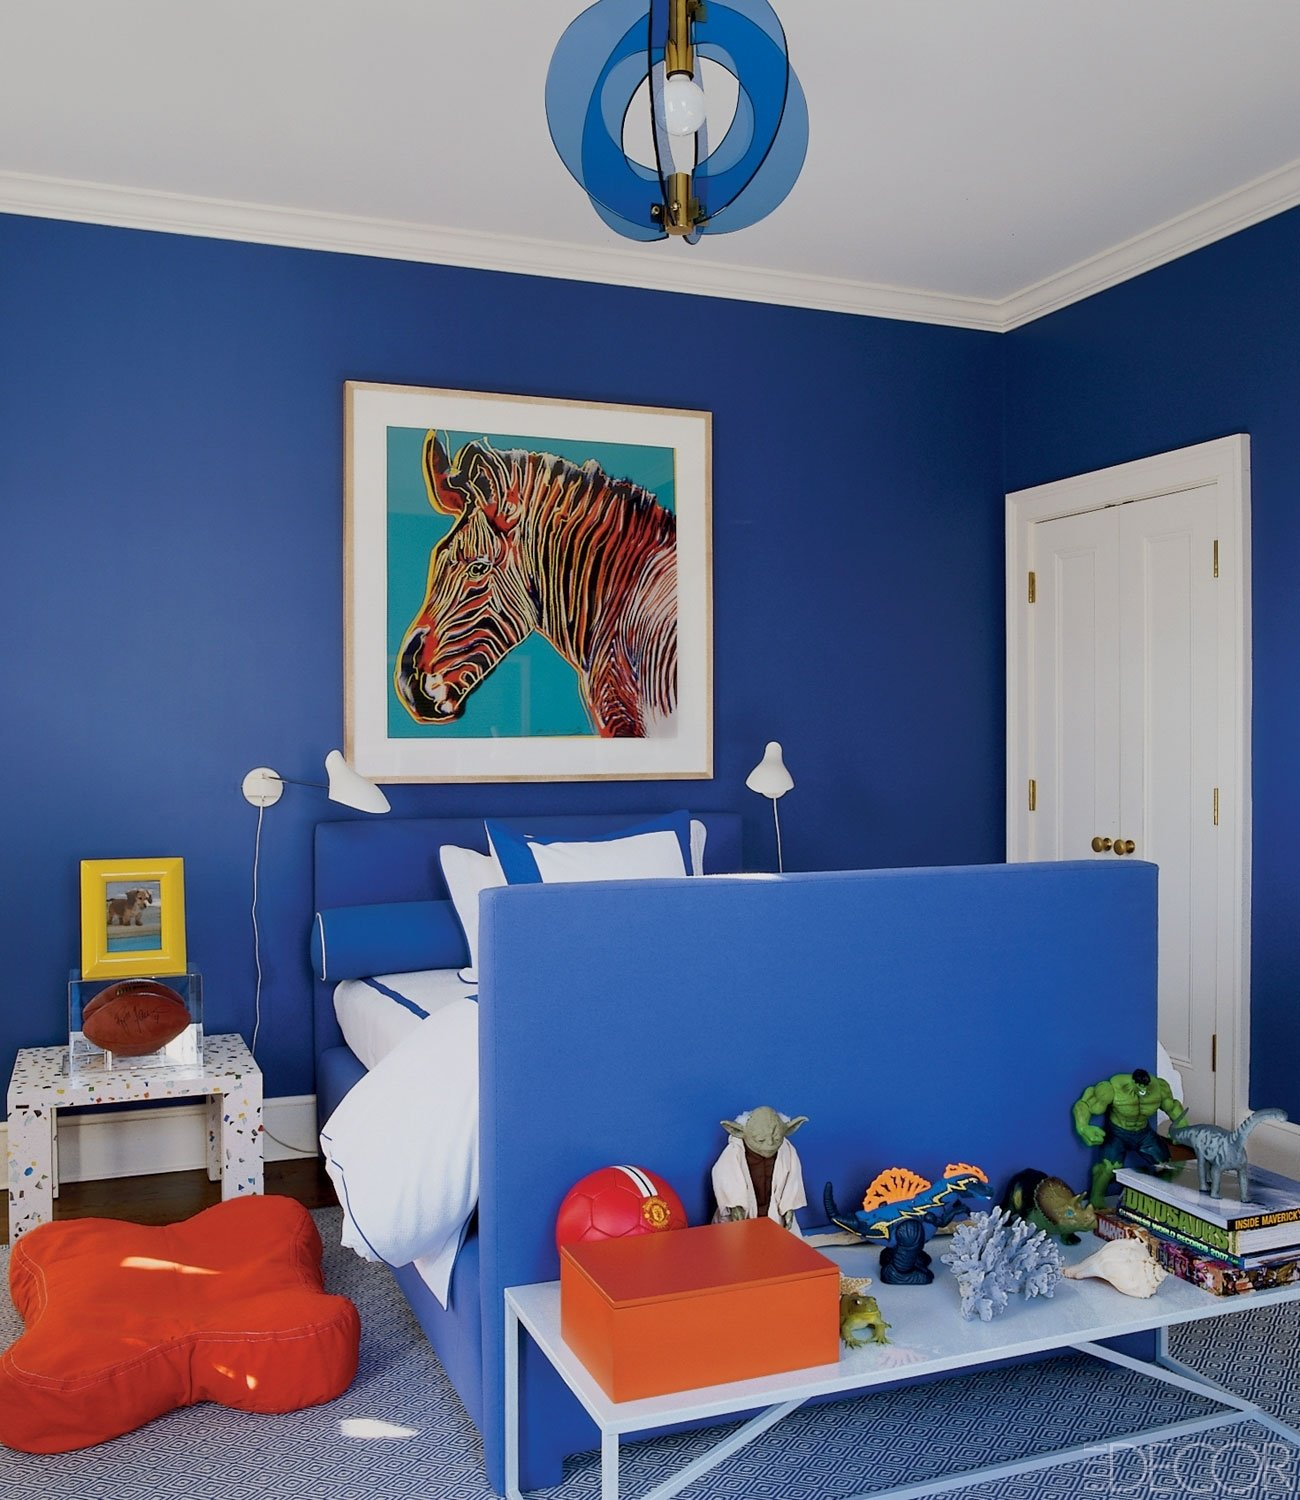 10 Stunning Kids Room Ideas For Boys boy bedroom ideas only for you blogalways